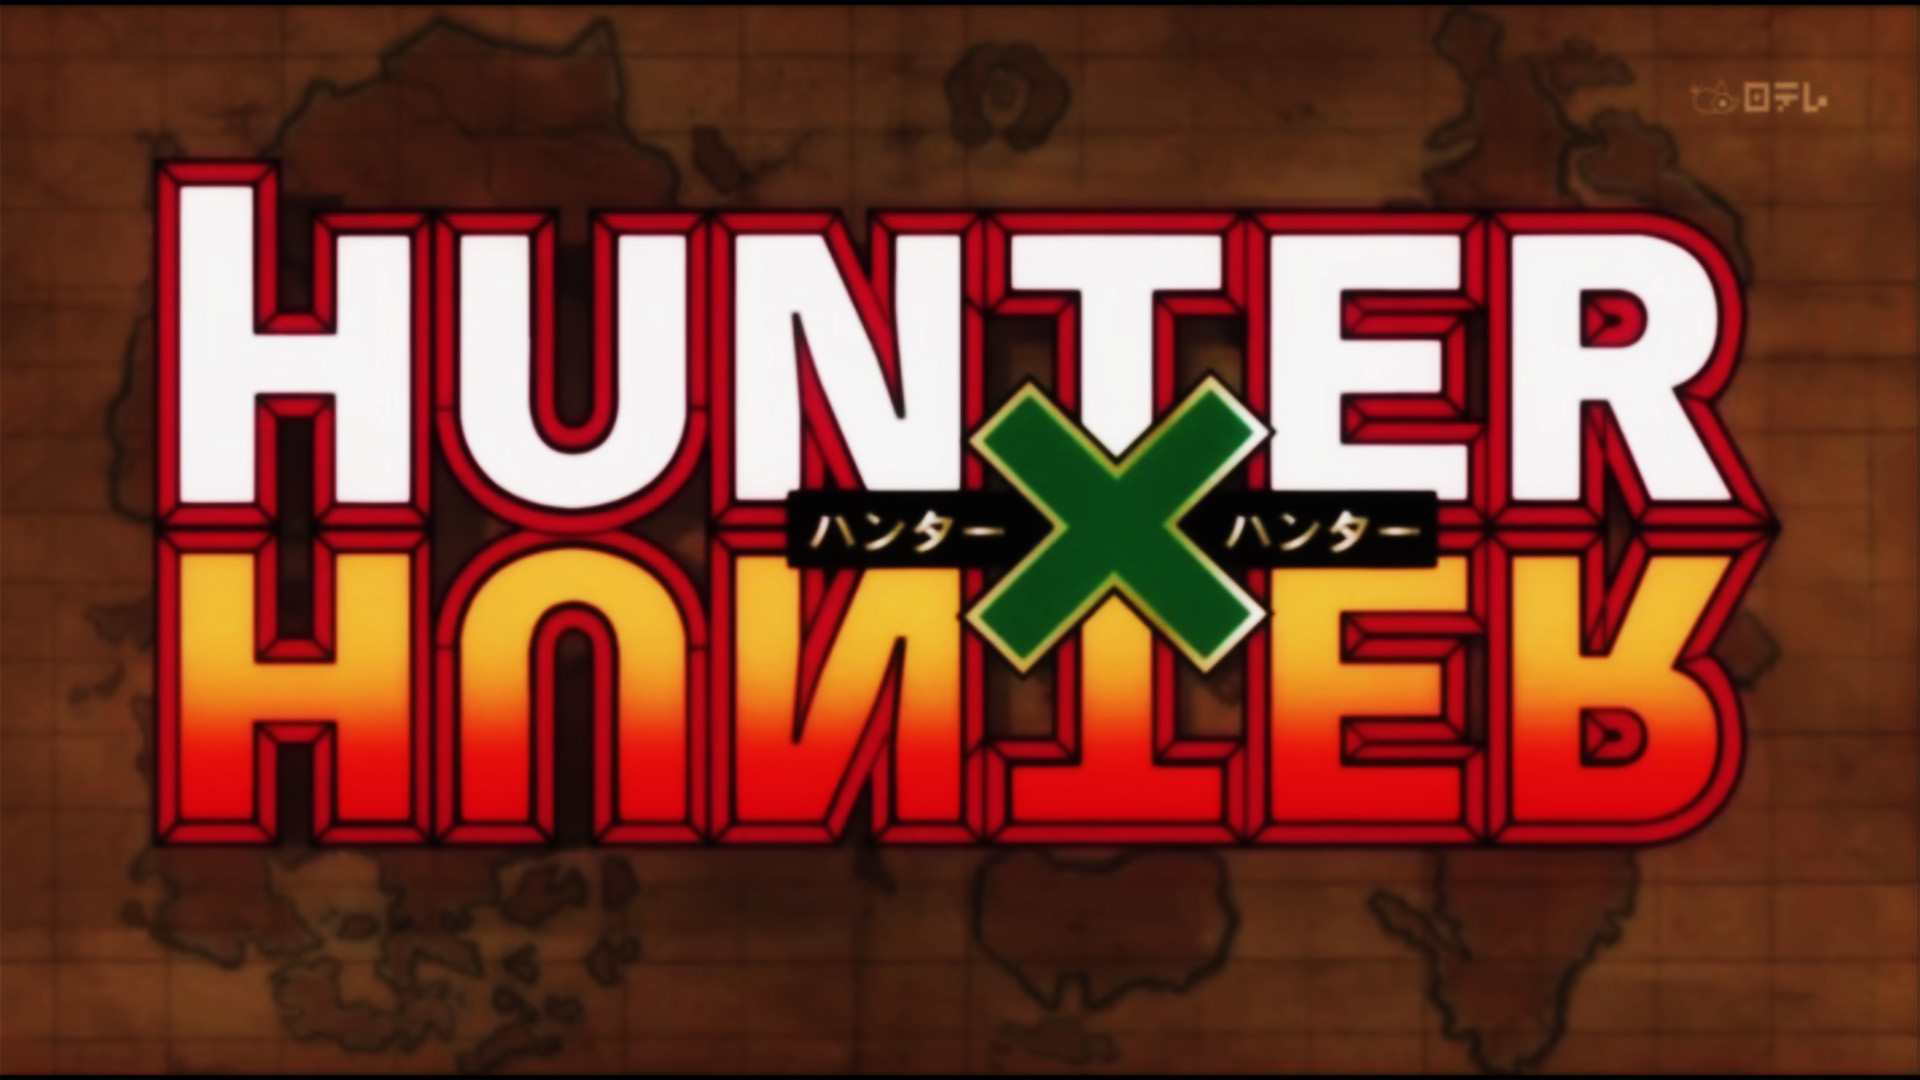 Remove wallpaper in five steps! Hunter X Hunter Wallpapers High Quality | Download Free